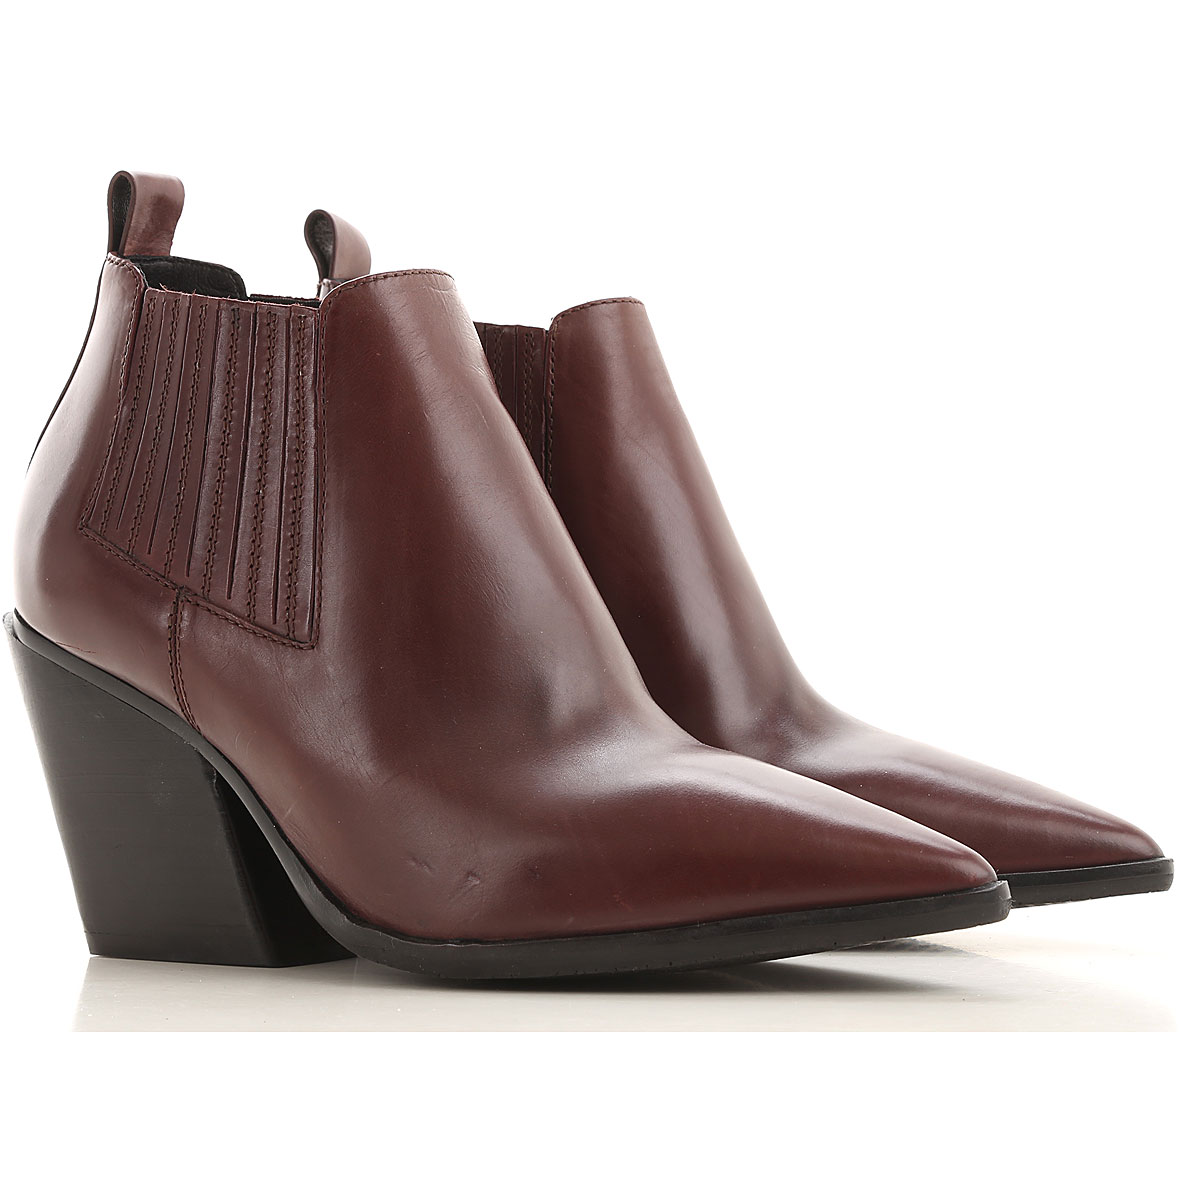 Elvio Zanon Boots for Women, Booties On Sale in Outlet, Plum, Nappa Leather, 2019, 6 7 8 9